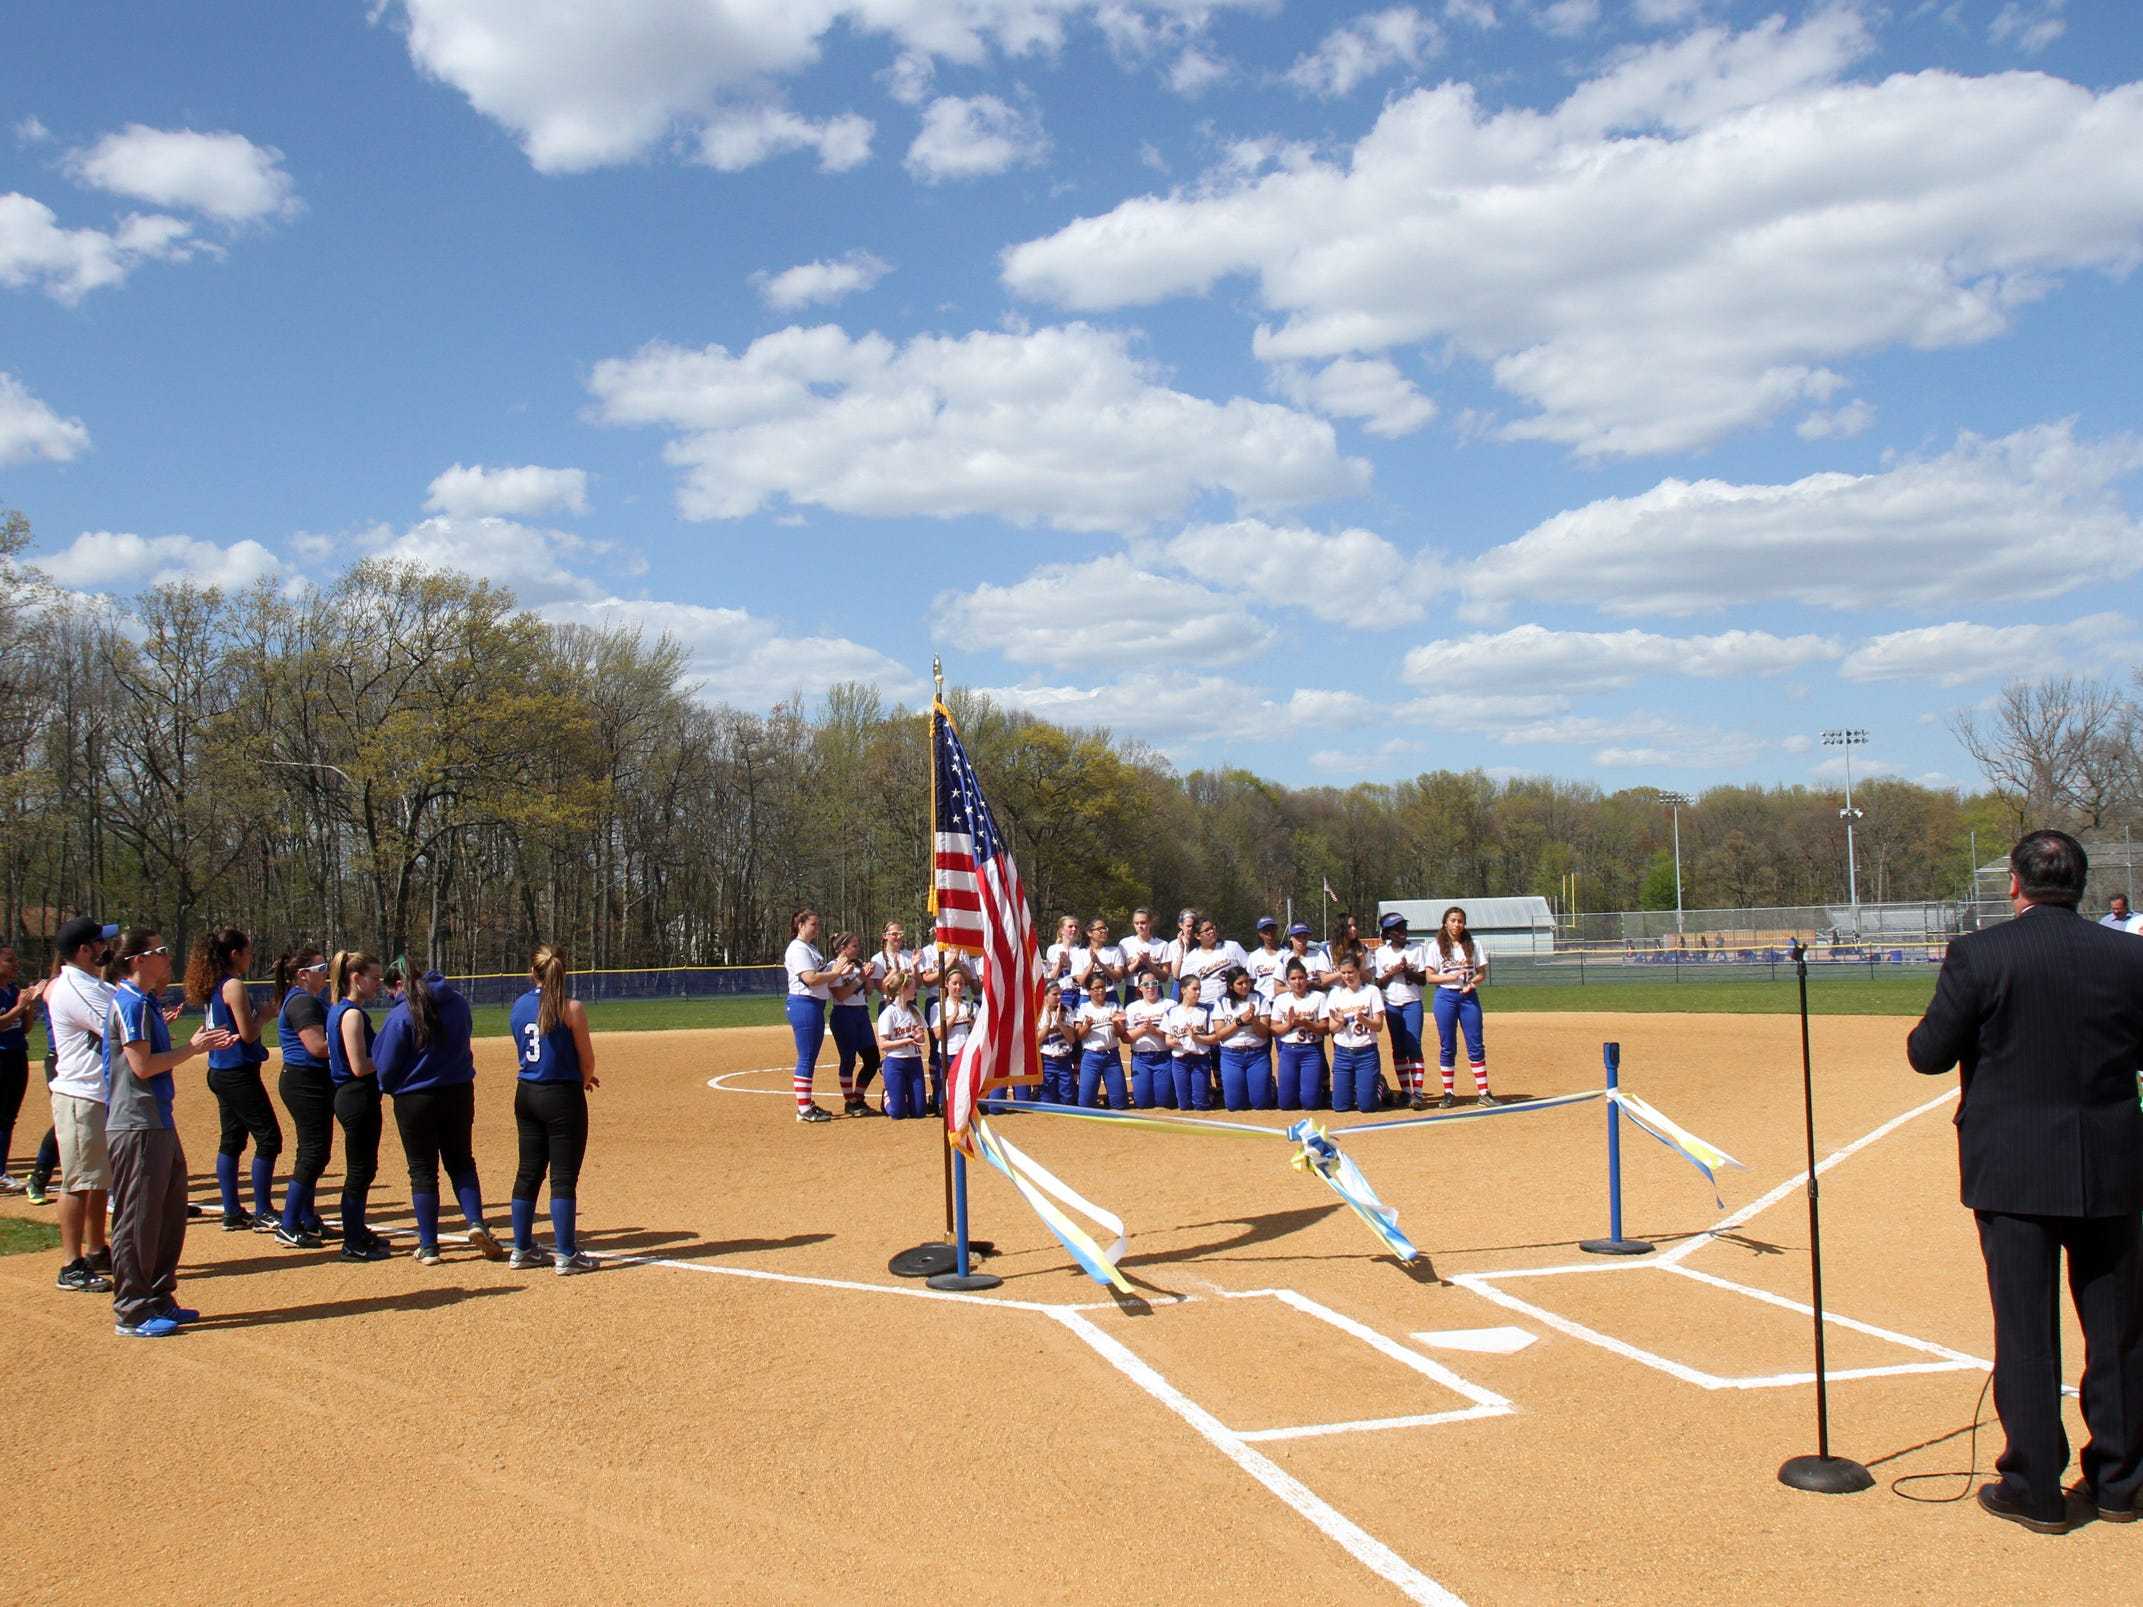 A ribbon cutting occurred at the new softball fields at North Brunswick High School where the Raiders of North Brunswick took on the Ramblers of Carteret High School on Wednesday, April 29, 2015.